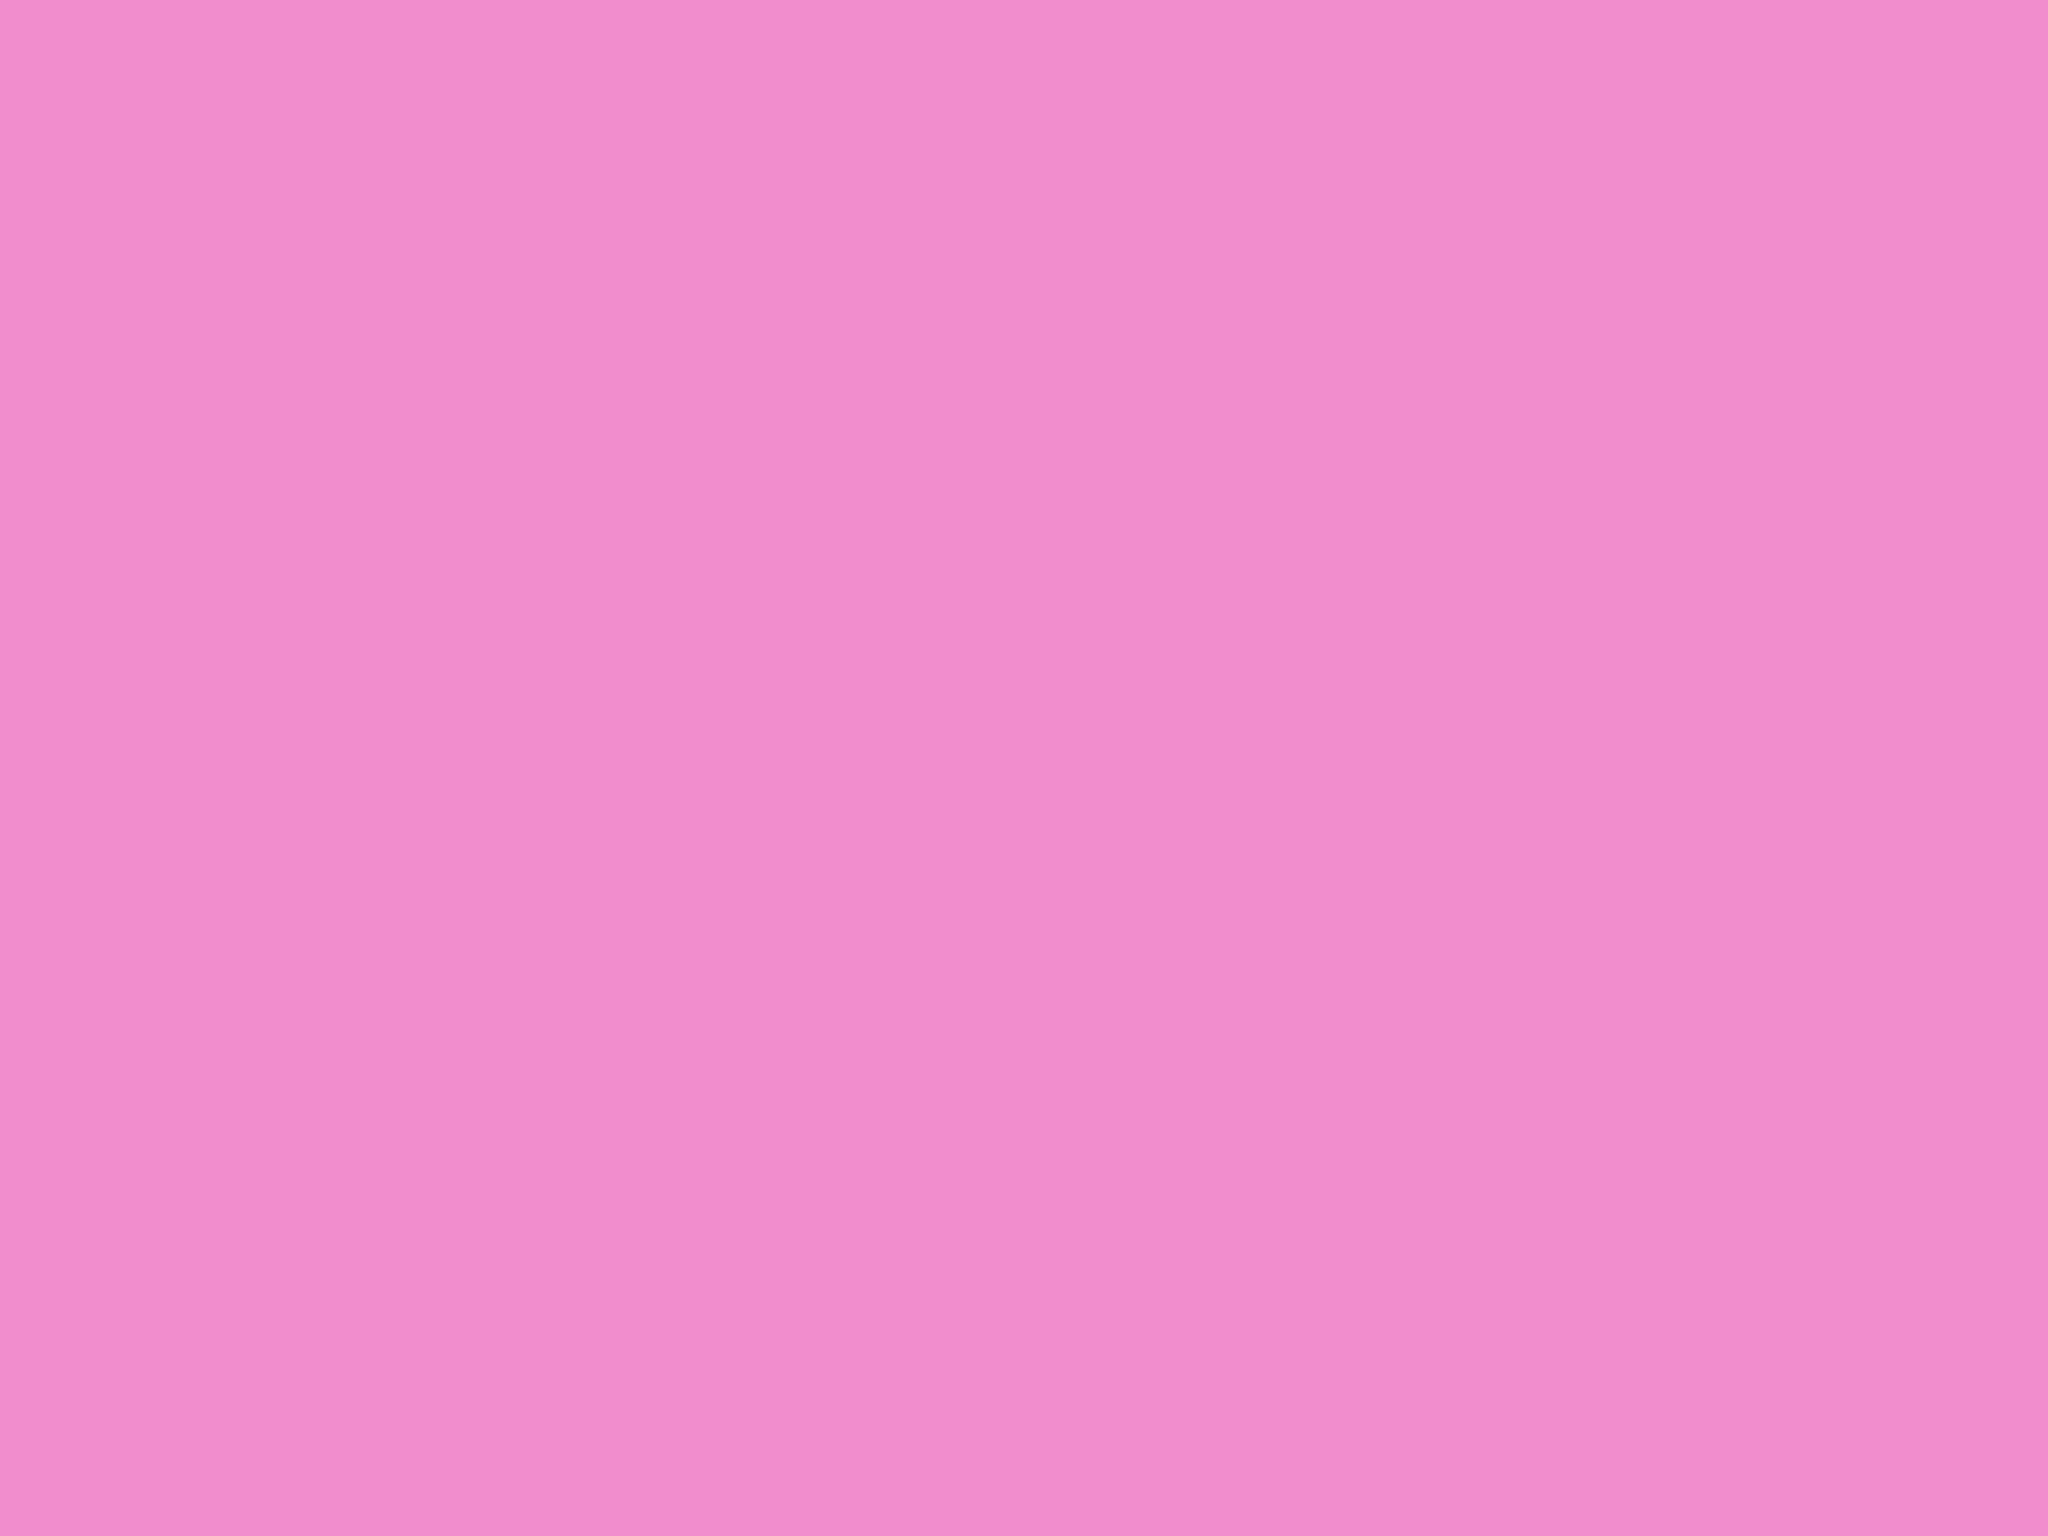 2048x1536 Orchid Pink Solid Color Background